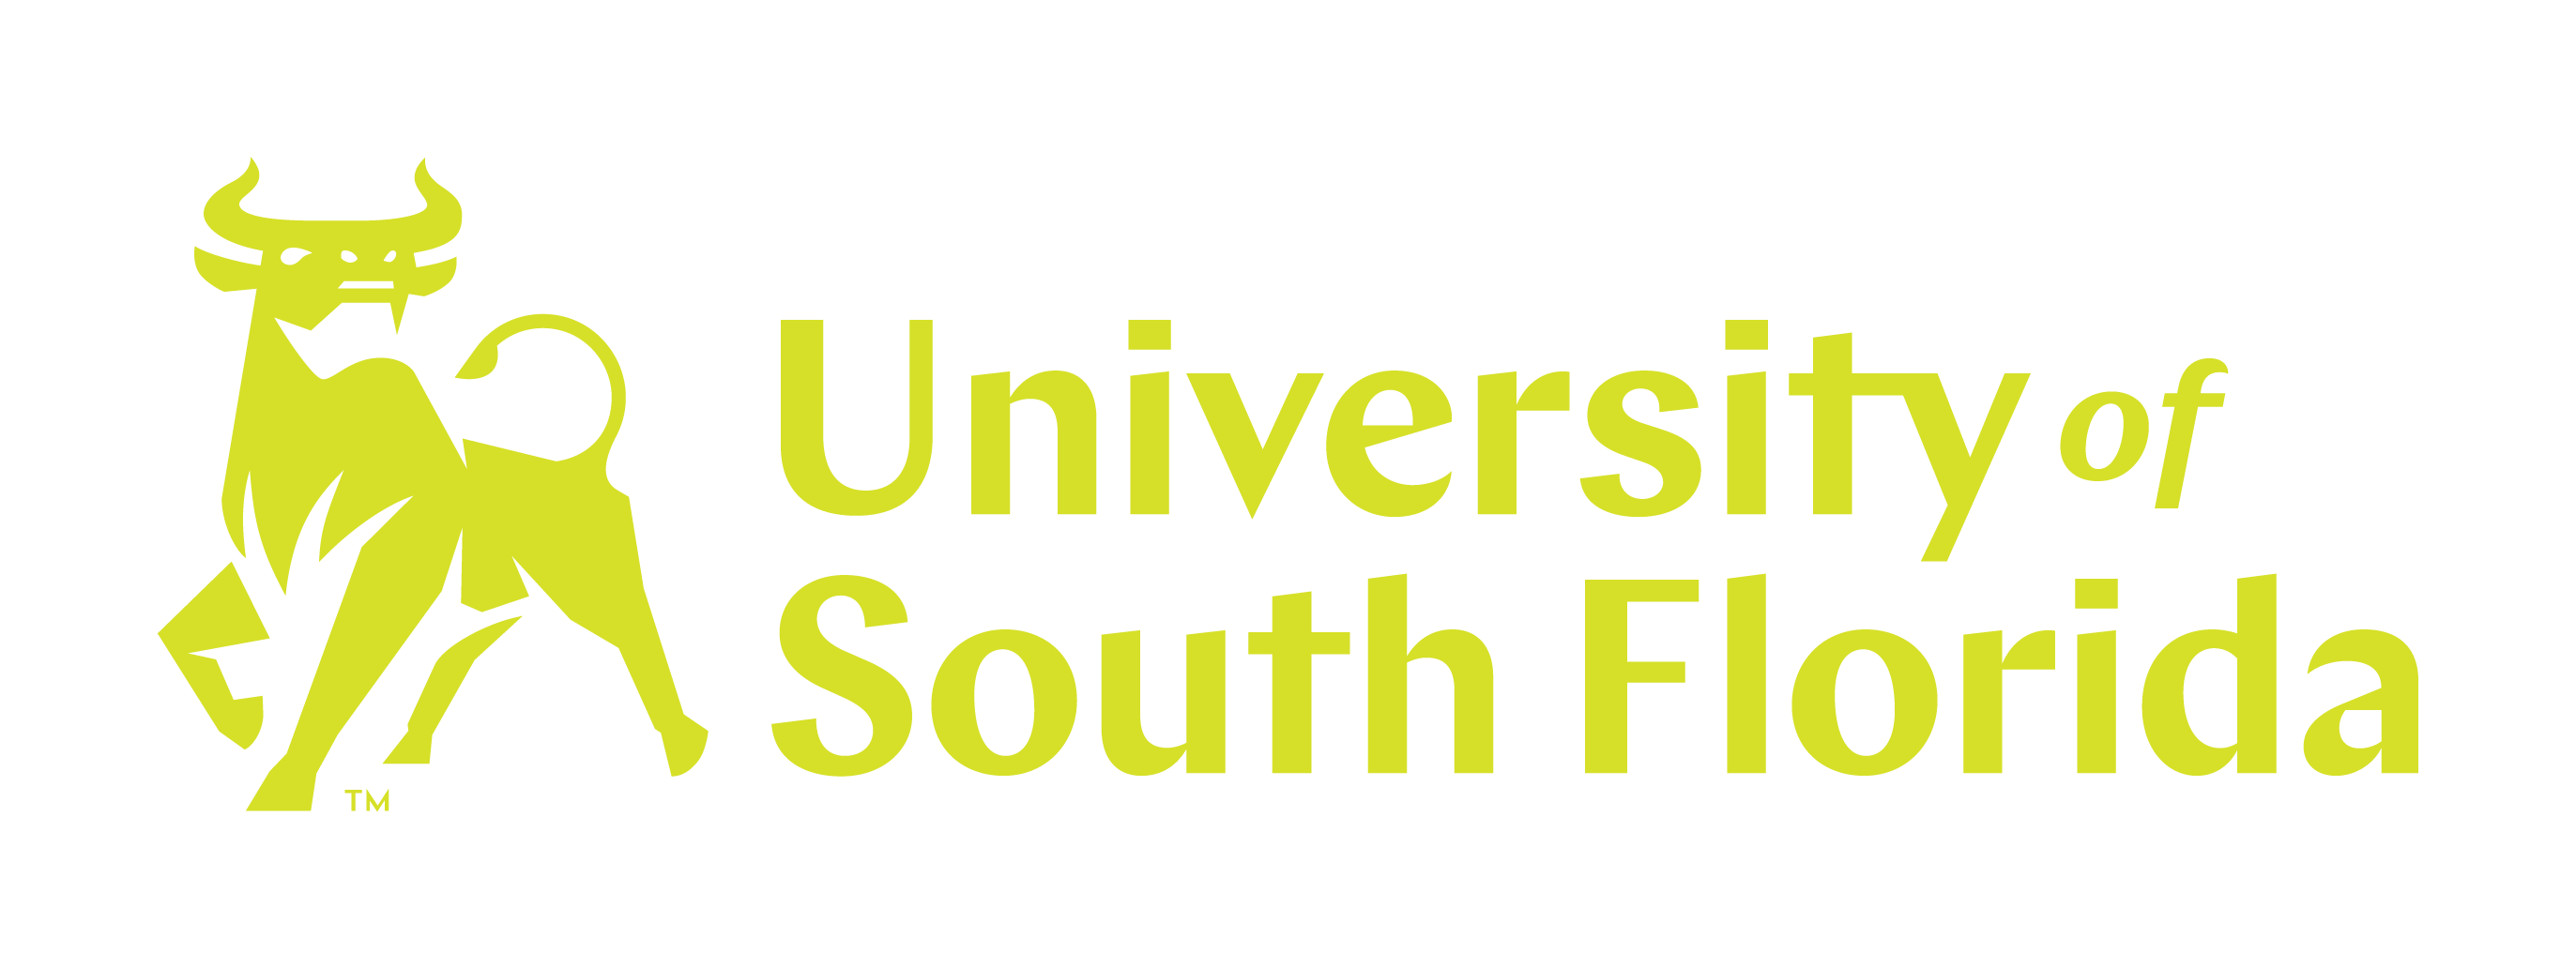 University of South Florida Header Logo